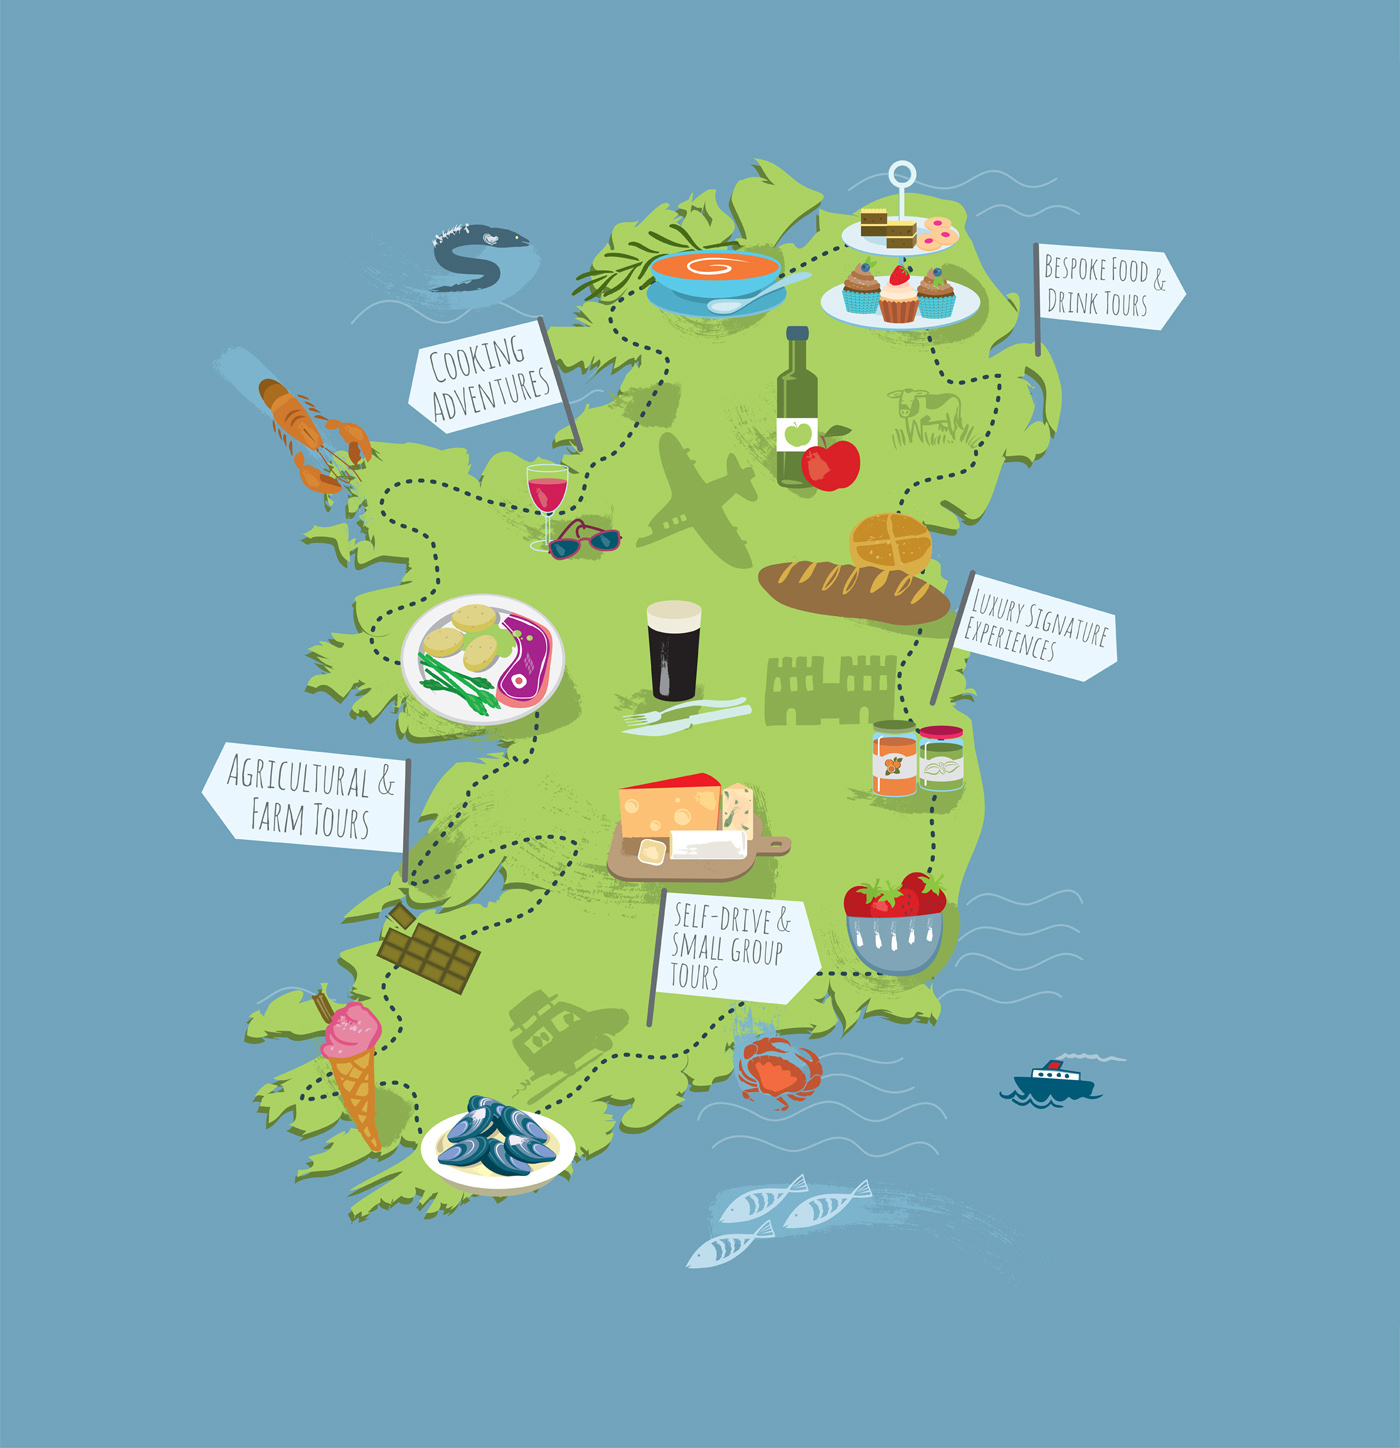 Touring map Ireland - Karen Nolan on